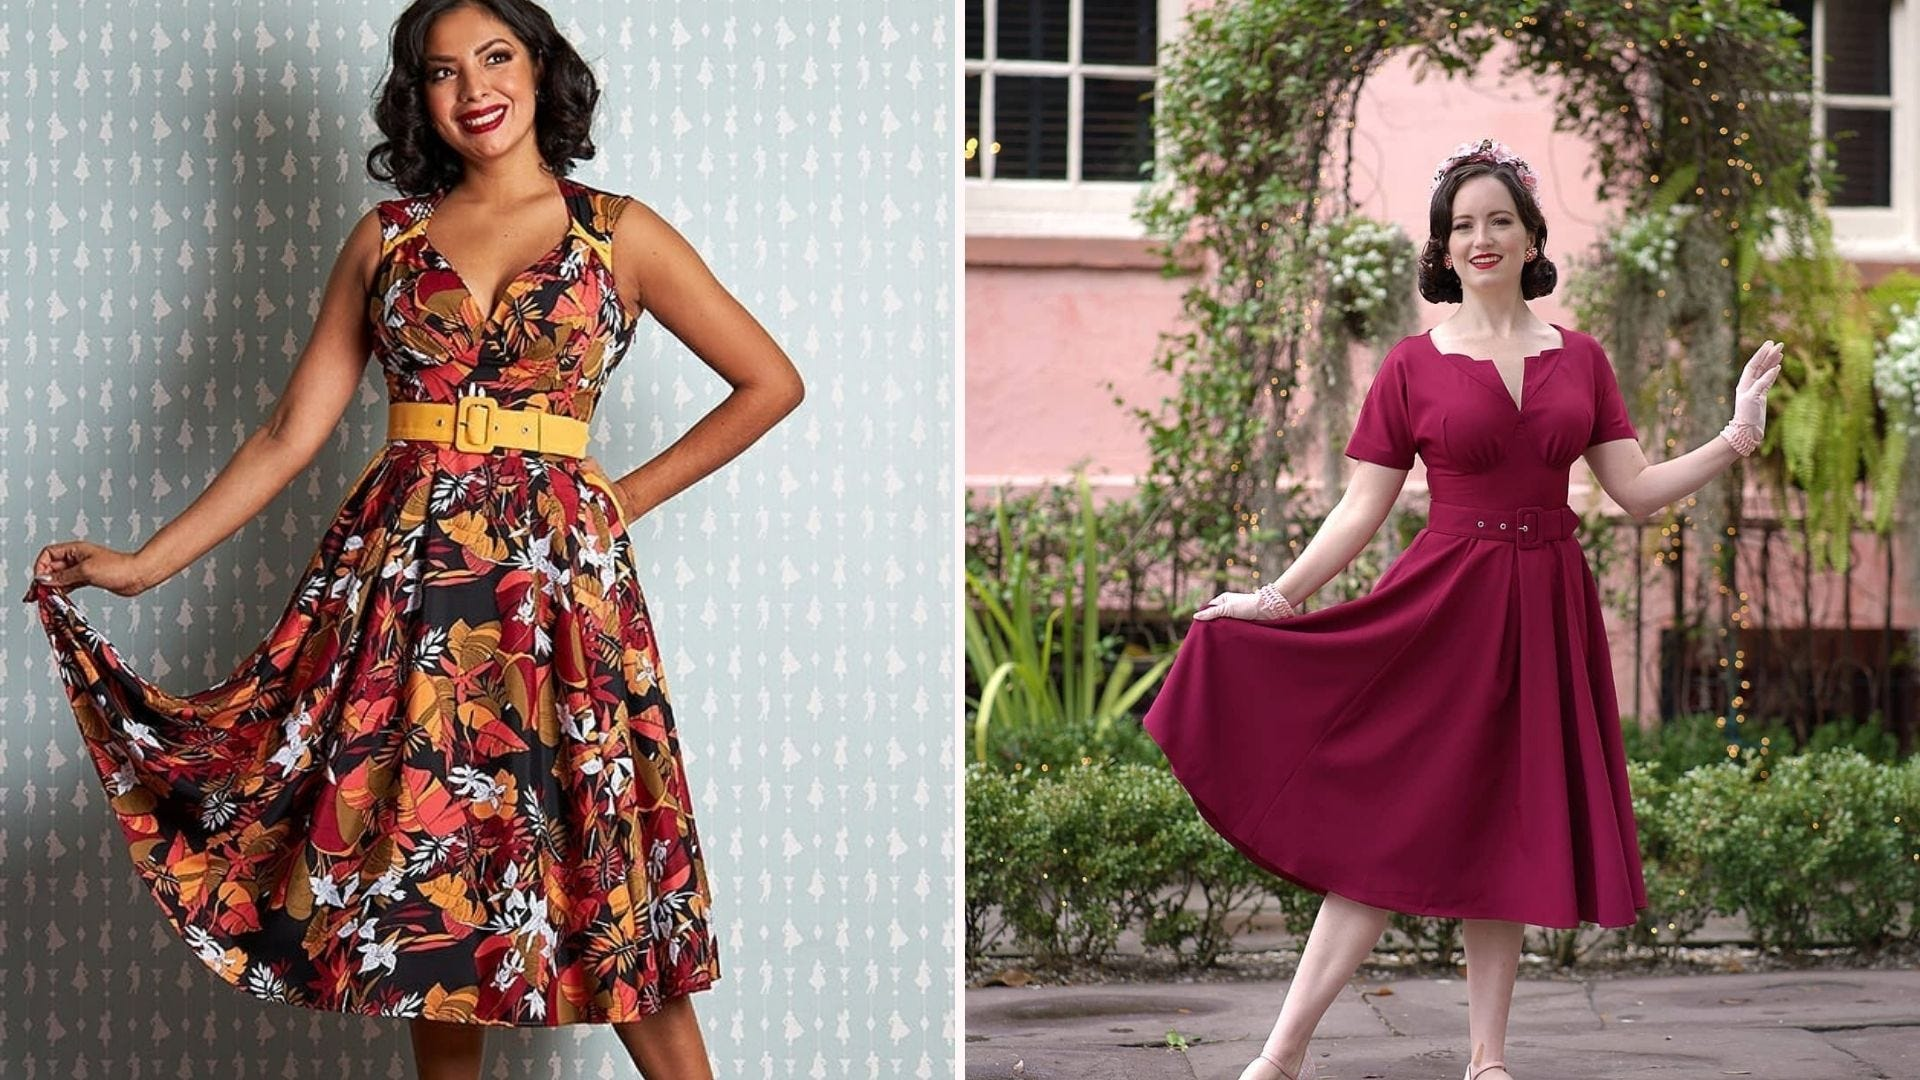 A woman in a belted orange and red floral dress; a woman in a berry-colored swing dress